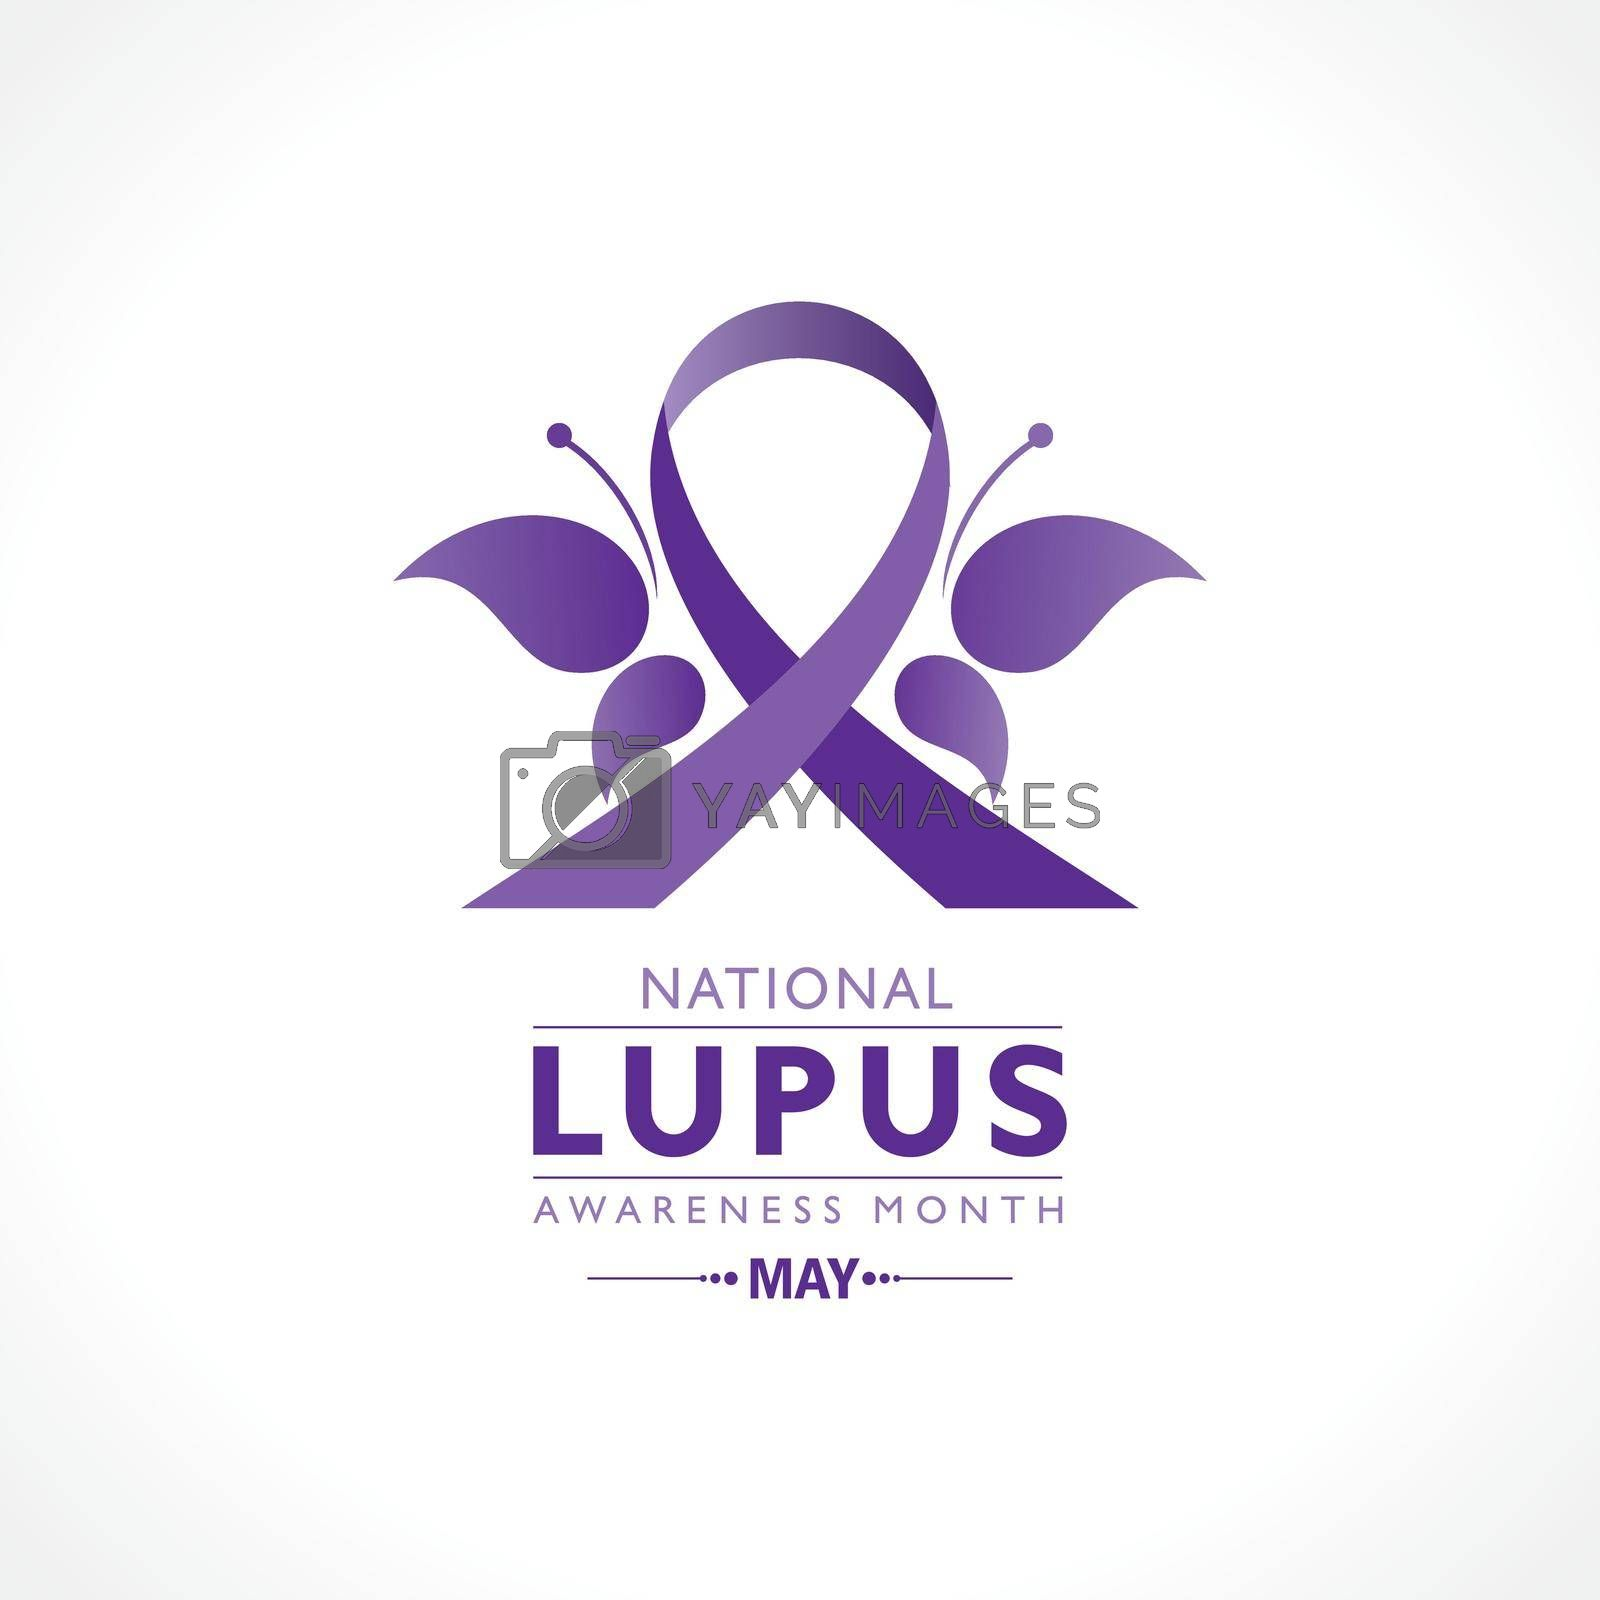 Royalty free image of Lupus Awareness Month observed in May. by graphicsdunia4you